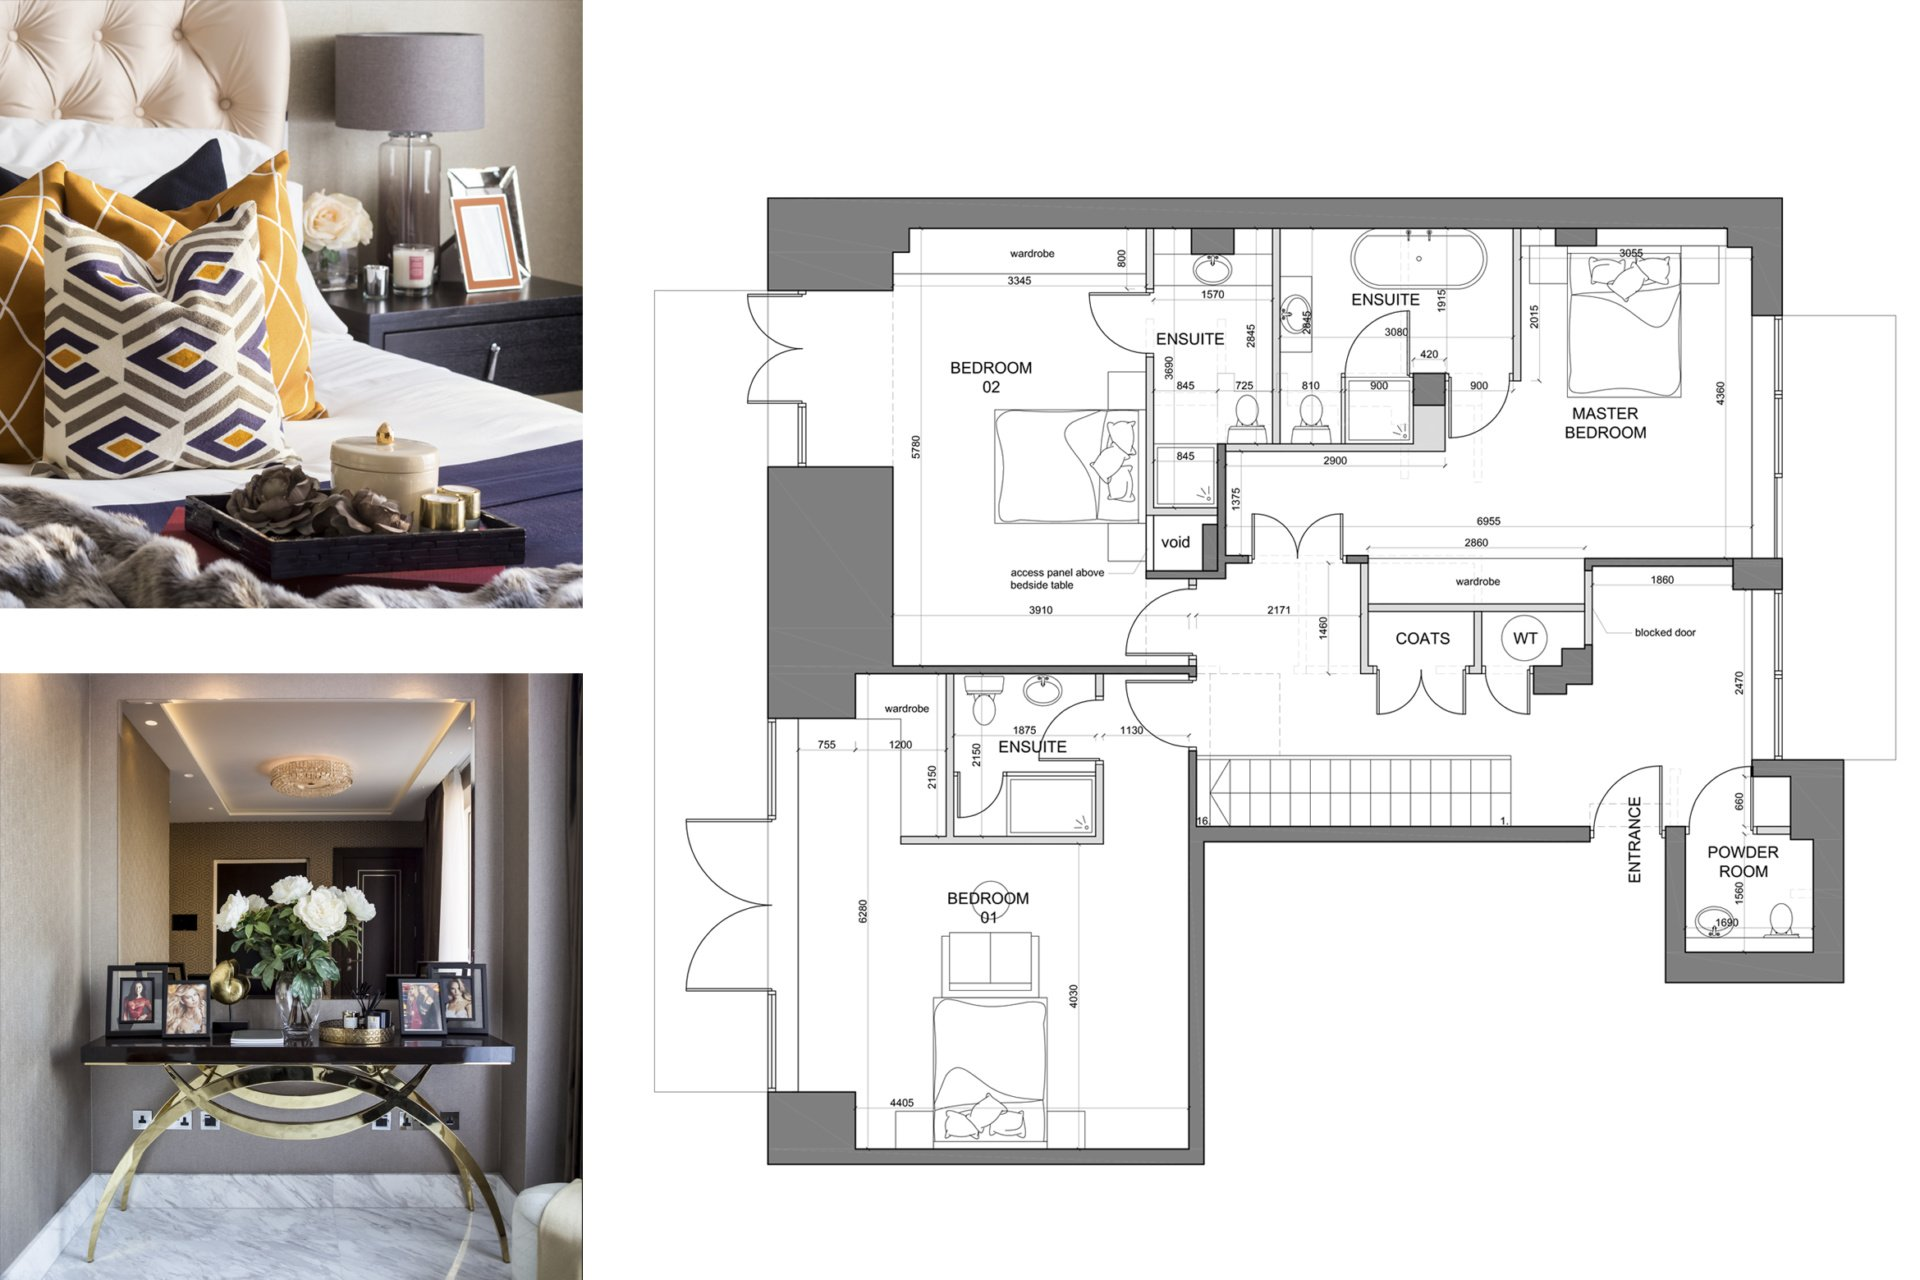 St James Park Westminster SW1H Penthouse alterations and refurbishment Floor plan and furnishings St James Park, Westminster SW1H | Penthouse alterations and refurbishment